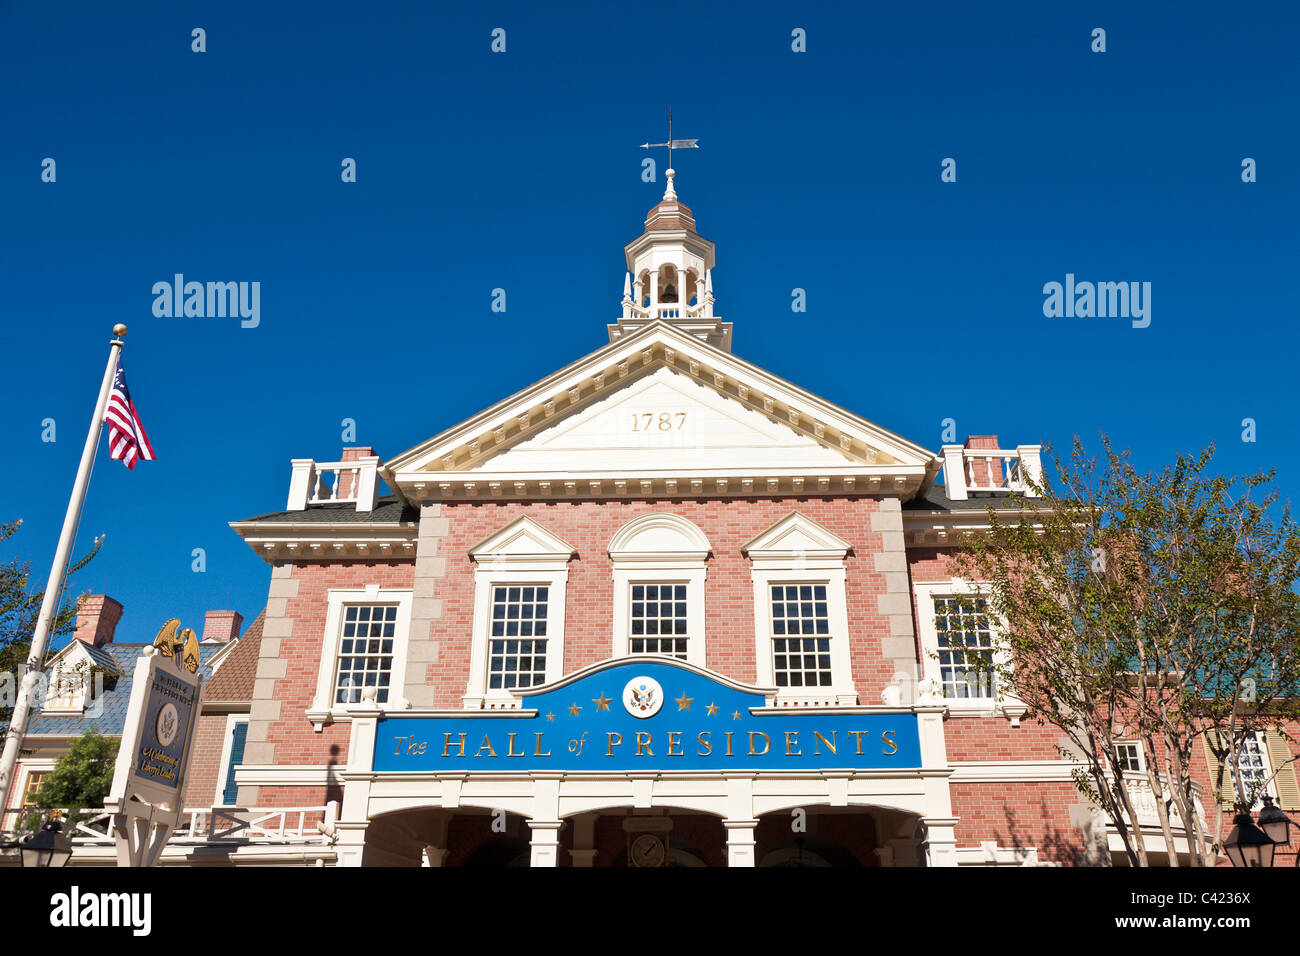 The Hall of Presidents in the Magic Kingdom at Disney World, Kissimmee, Florida - Stock Image